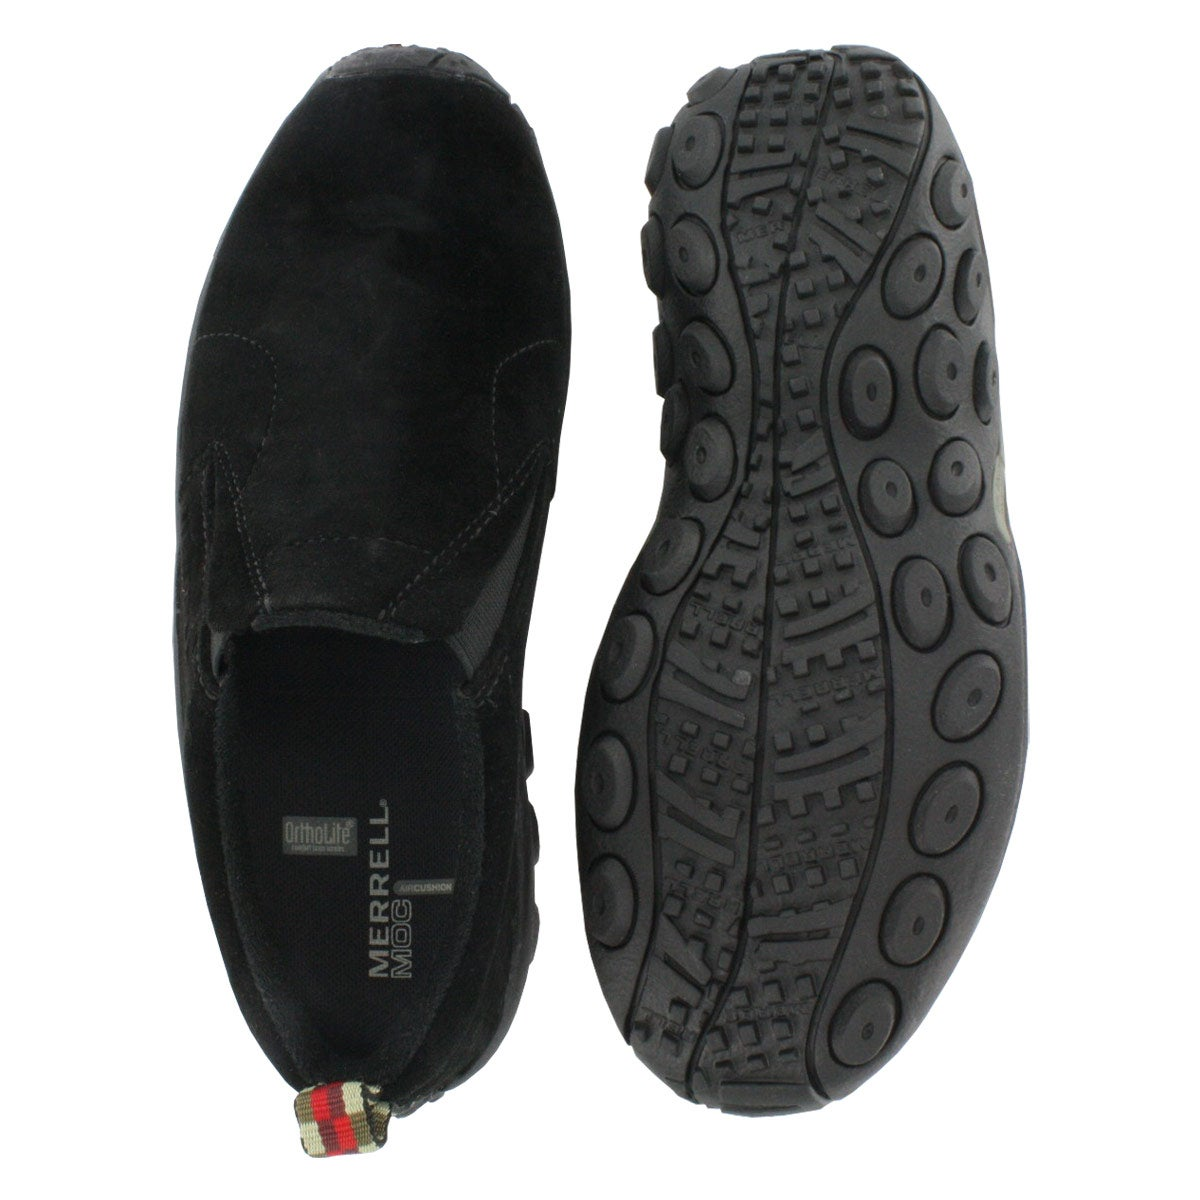 Lds Jungle Moc blk 2 gore slip on